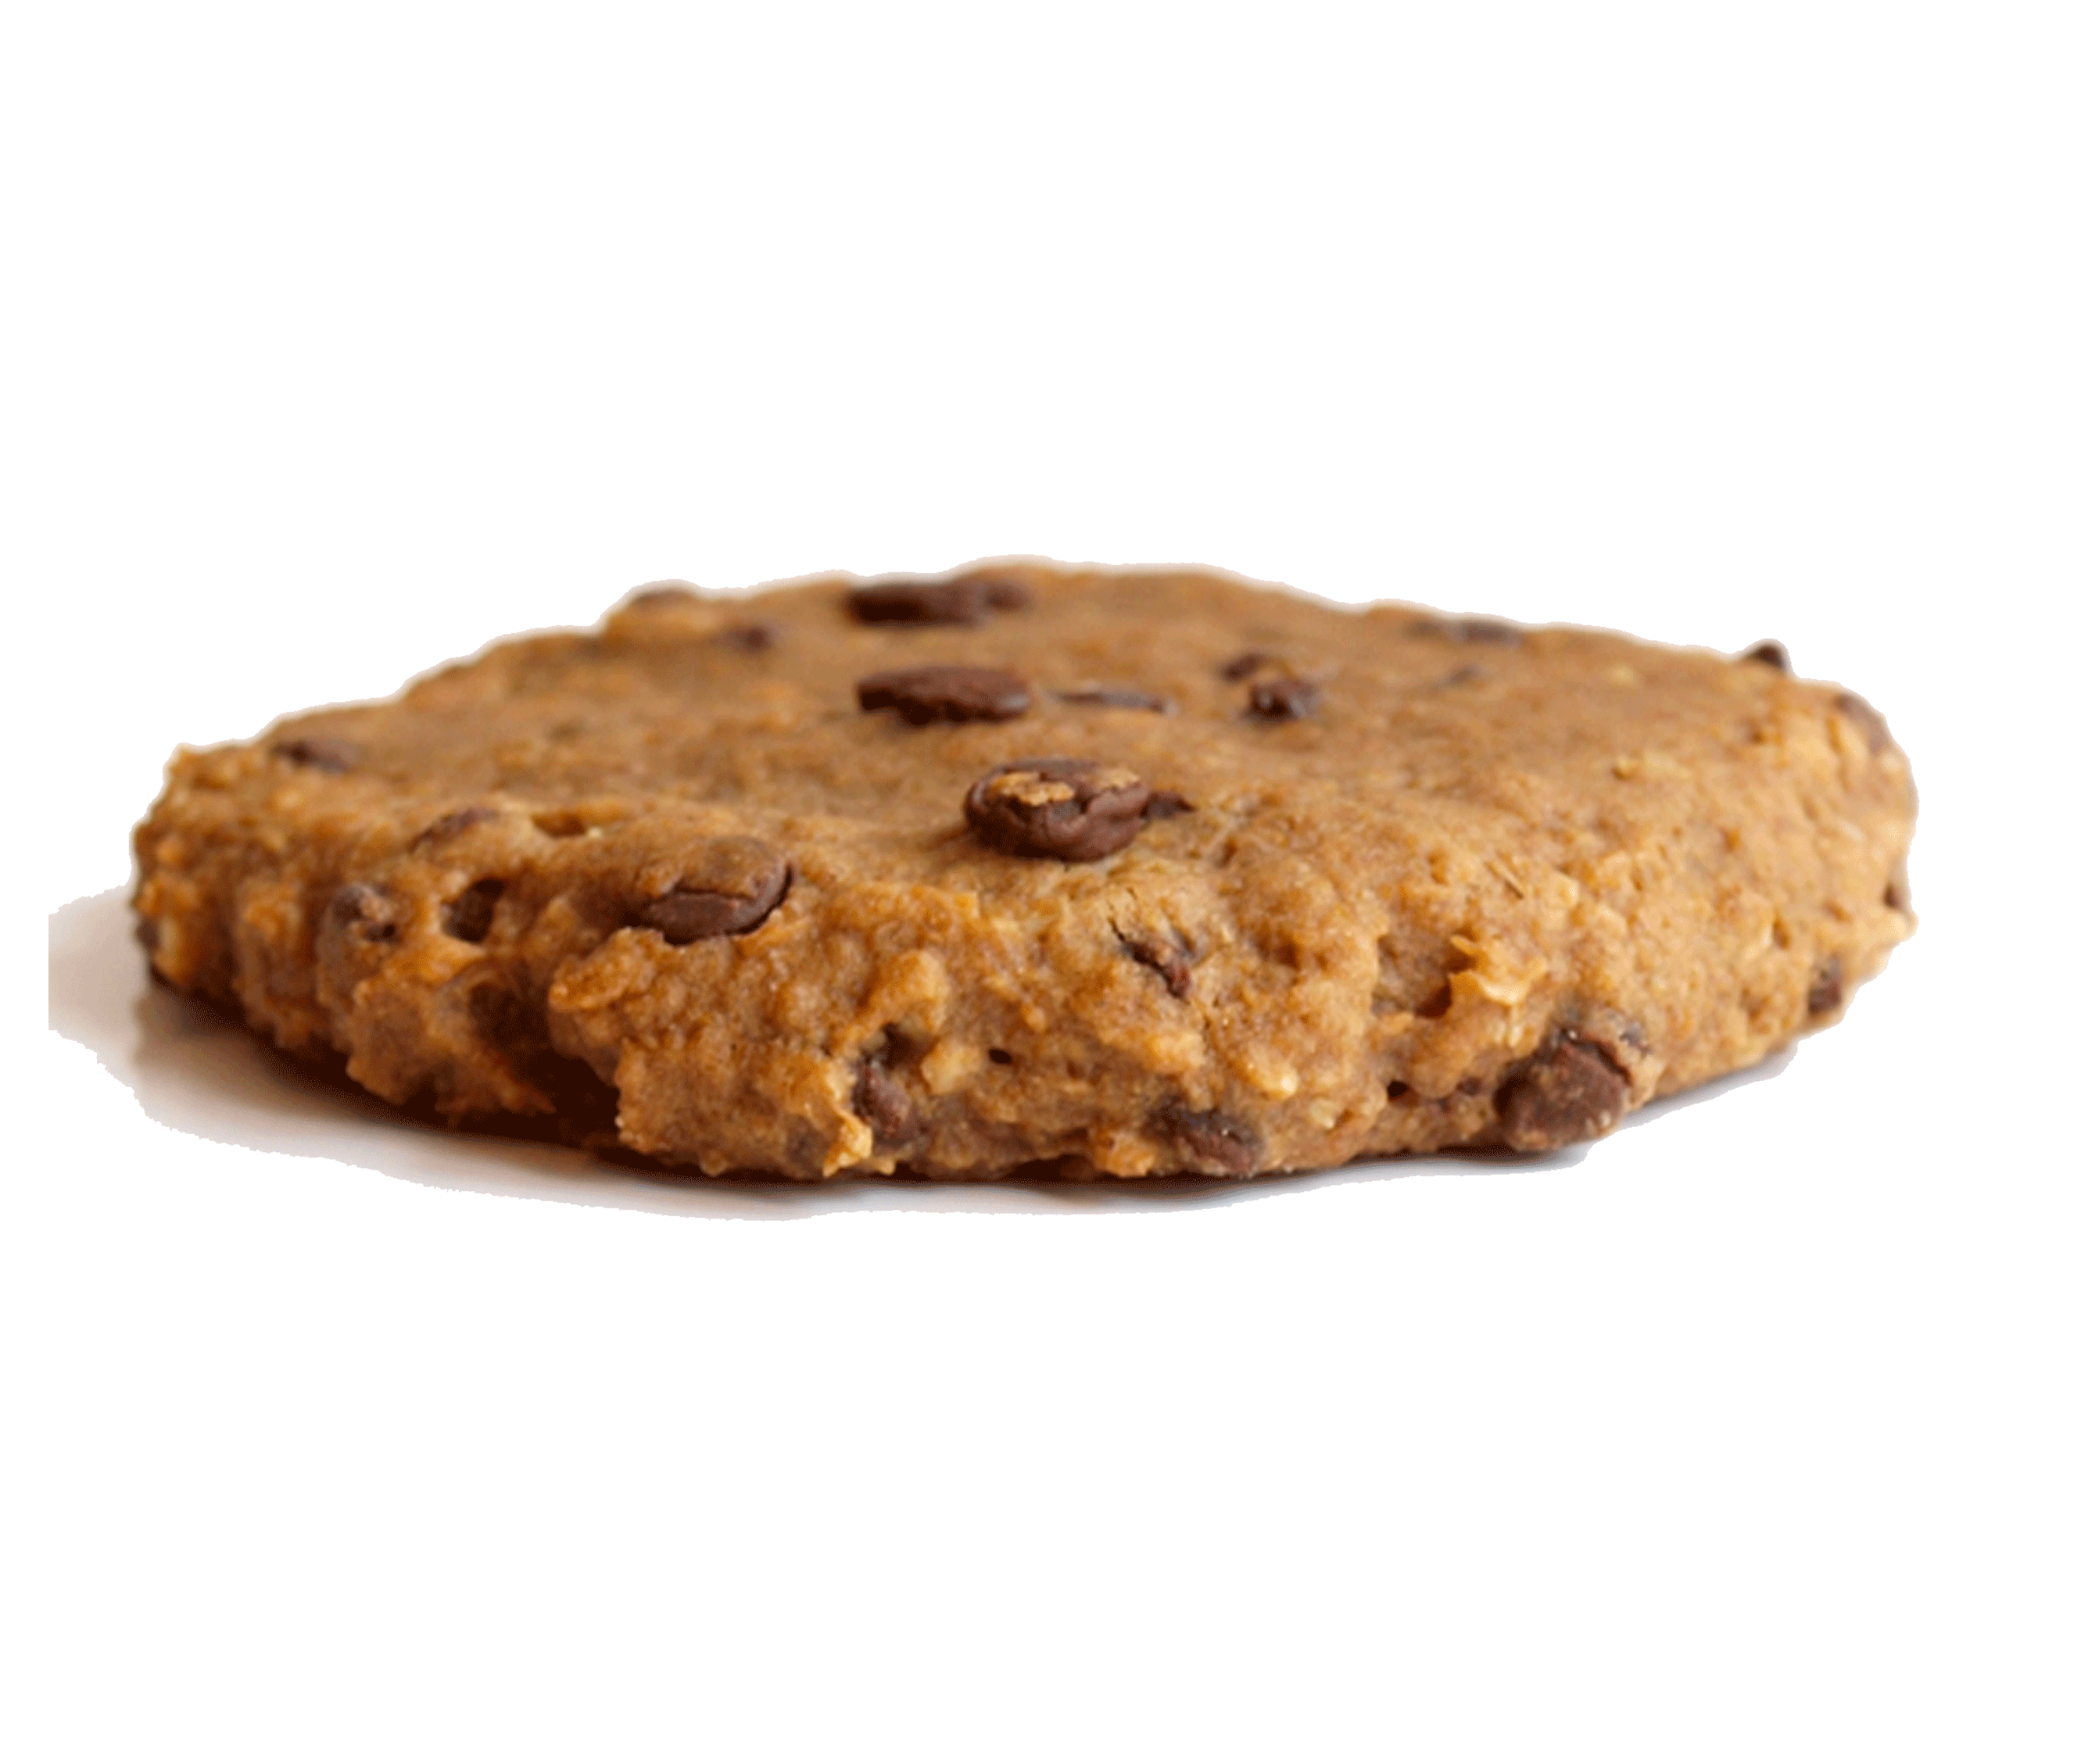 Oatmeal Cookie- made of healthy ingredients. Delicious healthy dessert.